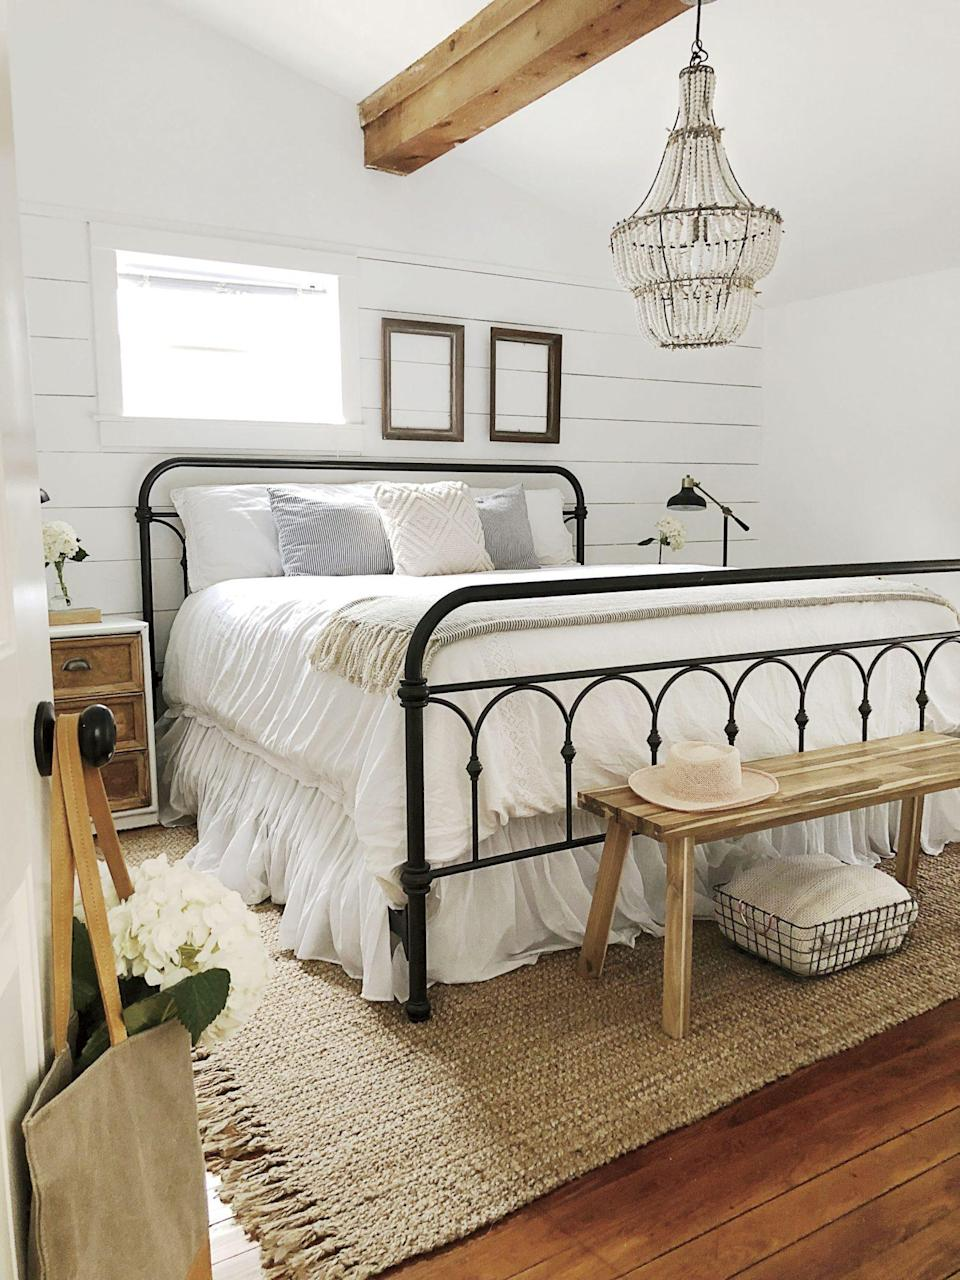 """<p>Shabby chic reigns in Kay Volmar's master bedroom, where <a href=""""https://www.behr.com/consumer/ColorDetailView/1850"""" rel=""""nofollow noopener"""" target=""""_blank"""" data-ylk=""""slk:Behr's Ultra Pure White"""" class=""""link rapid-noclick-resp"""">Behr's Ultra Pure White</a> creates a clean backdrop for perfectly patinaed decor. See the whole home <a href=""""https://www.southernliving.com/home/decor/kay-volmar-florida-cottage?slide=b7f74ec7-41e1-4dd2-a2b9-8c622cc83336#b7f74ec7-41e1-4dd2-a2b9-8c622cc83336"""" rel=""""nofollow noopener"""" target=""""_blank"""" data-ylk=""""slk:here"""" class=""""link rapid-noclick-resp"""">here</a>.</p>"""